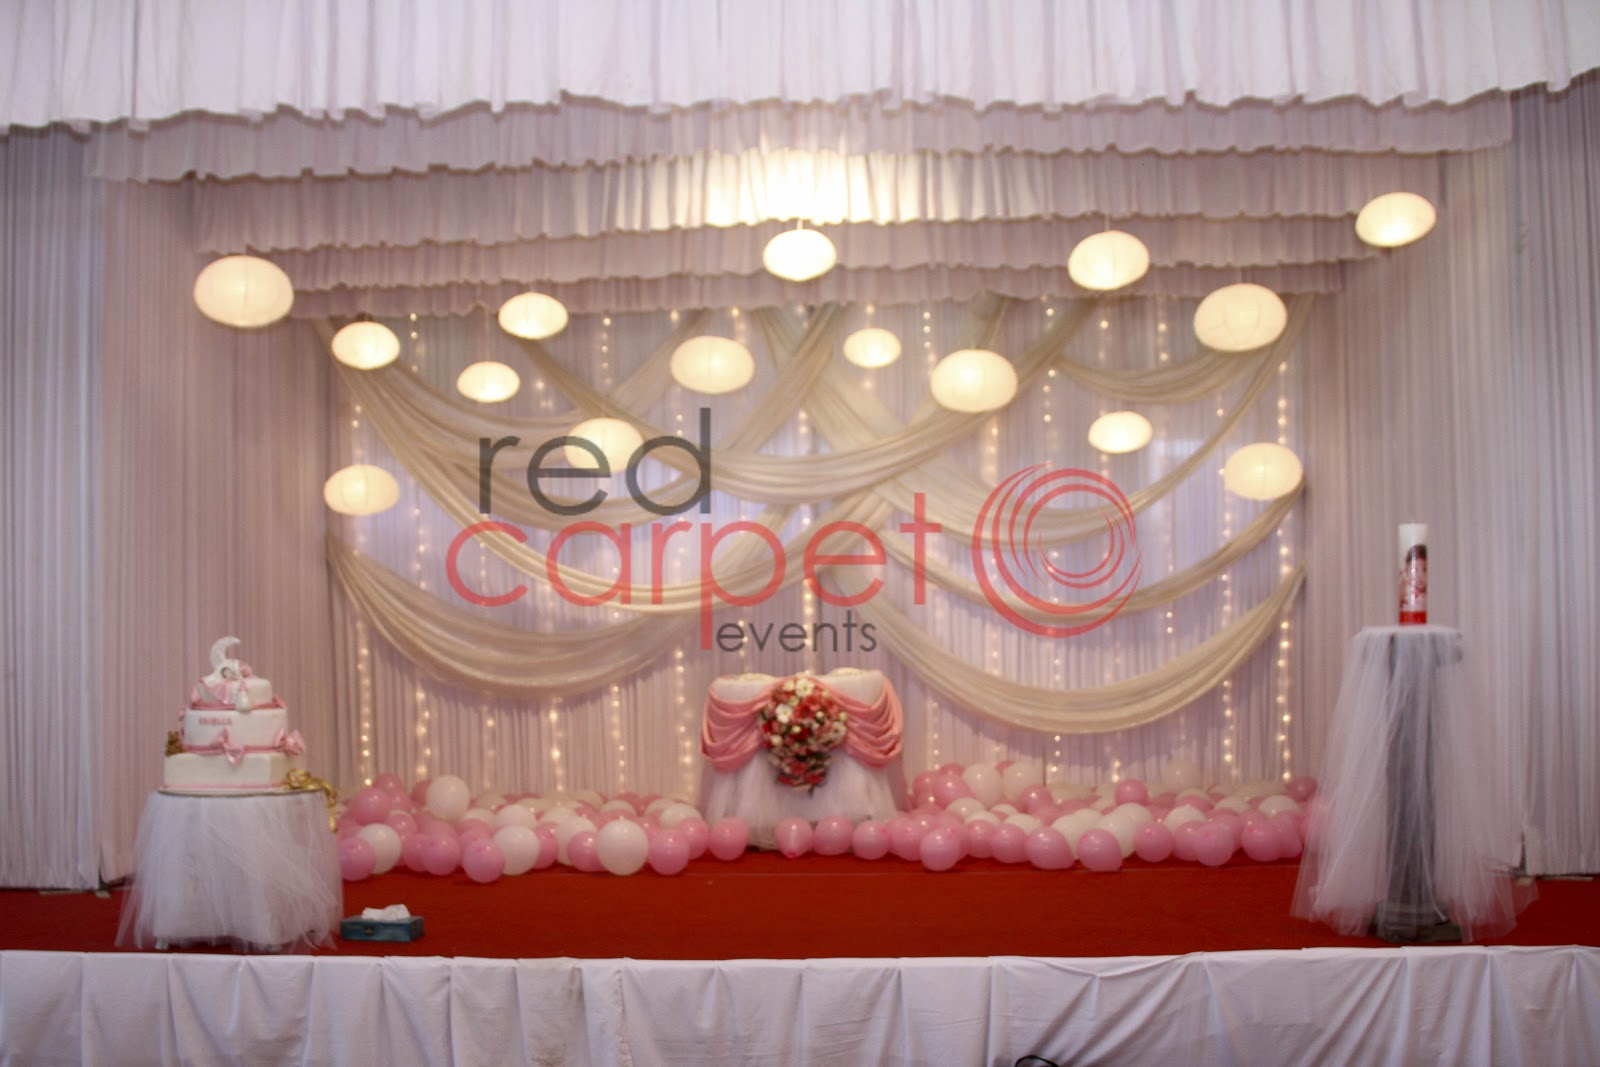 baptism decor decoration kerala, baptism decor kerala + a, baptism decor kerala + b, baptism decor kerala + c, baptism decor kerala + d, baptism decor kerala + e